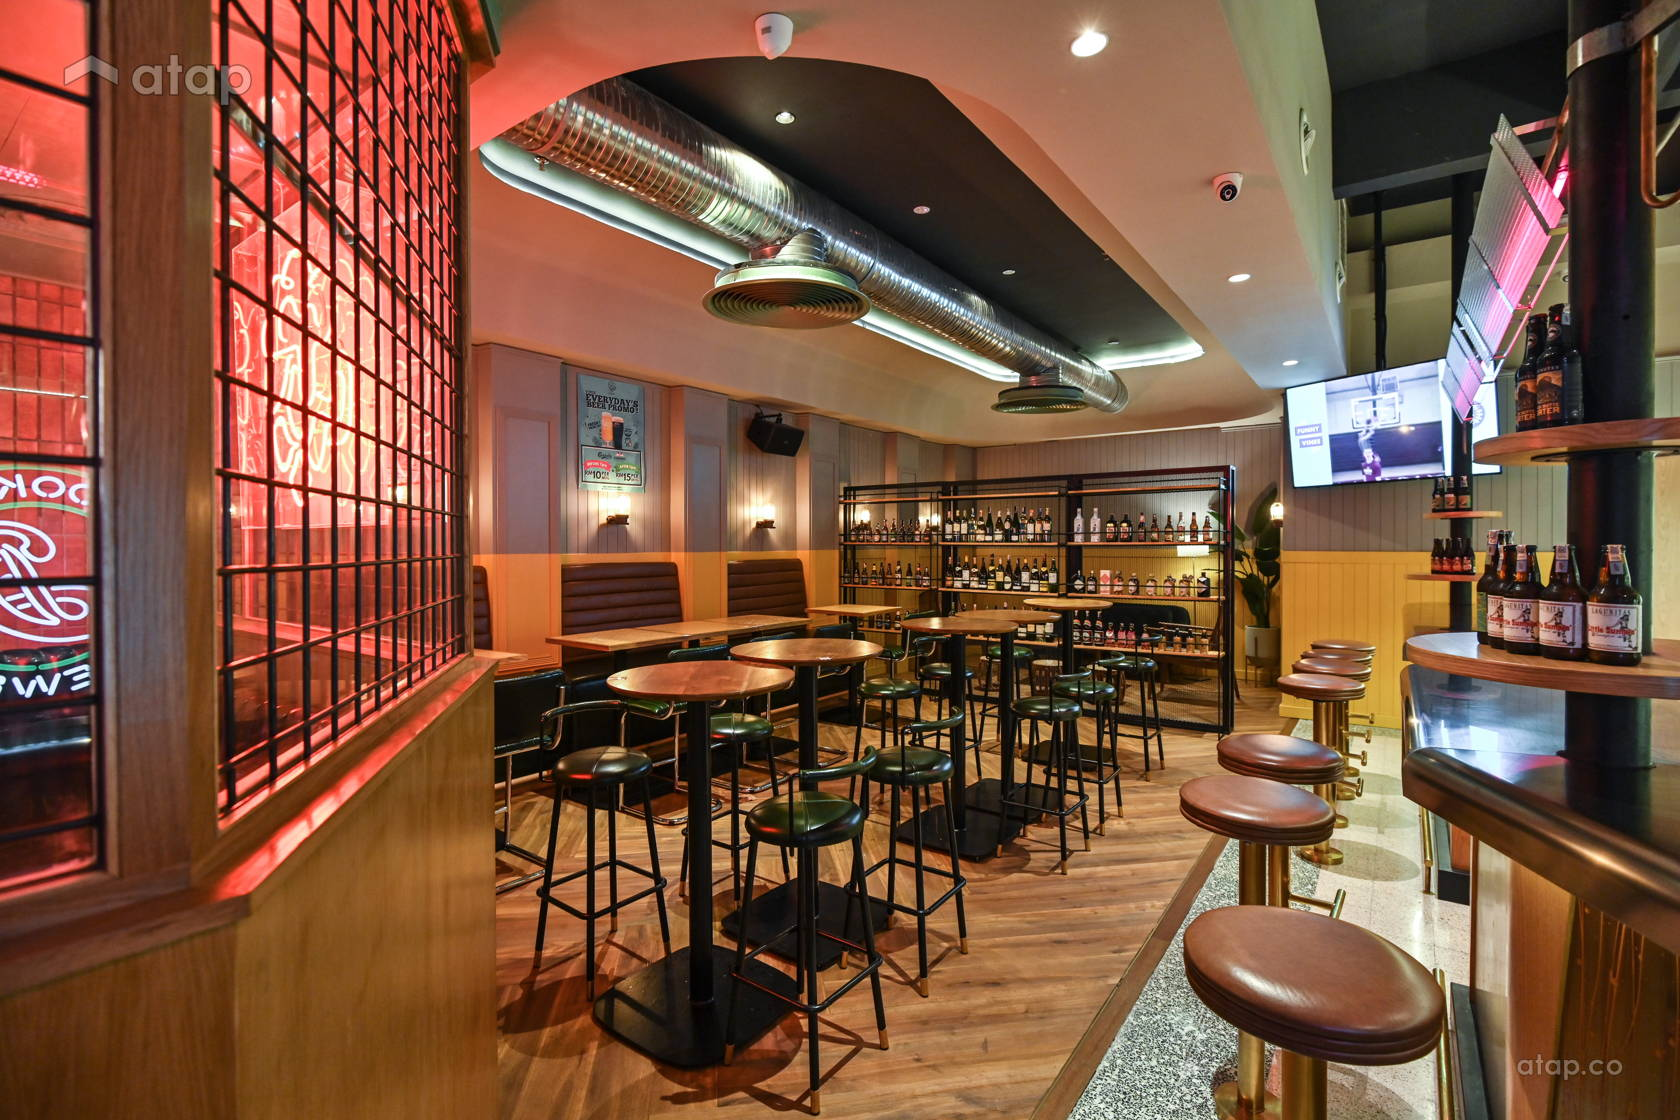 Modern Retro F&B @ Hop Beer Bar